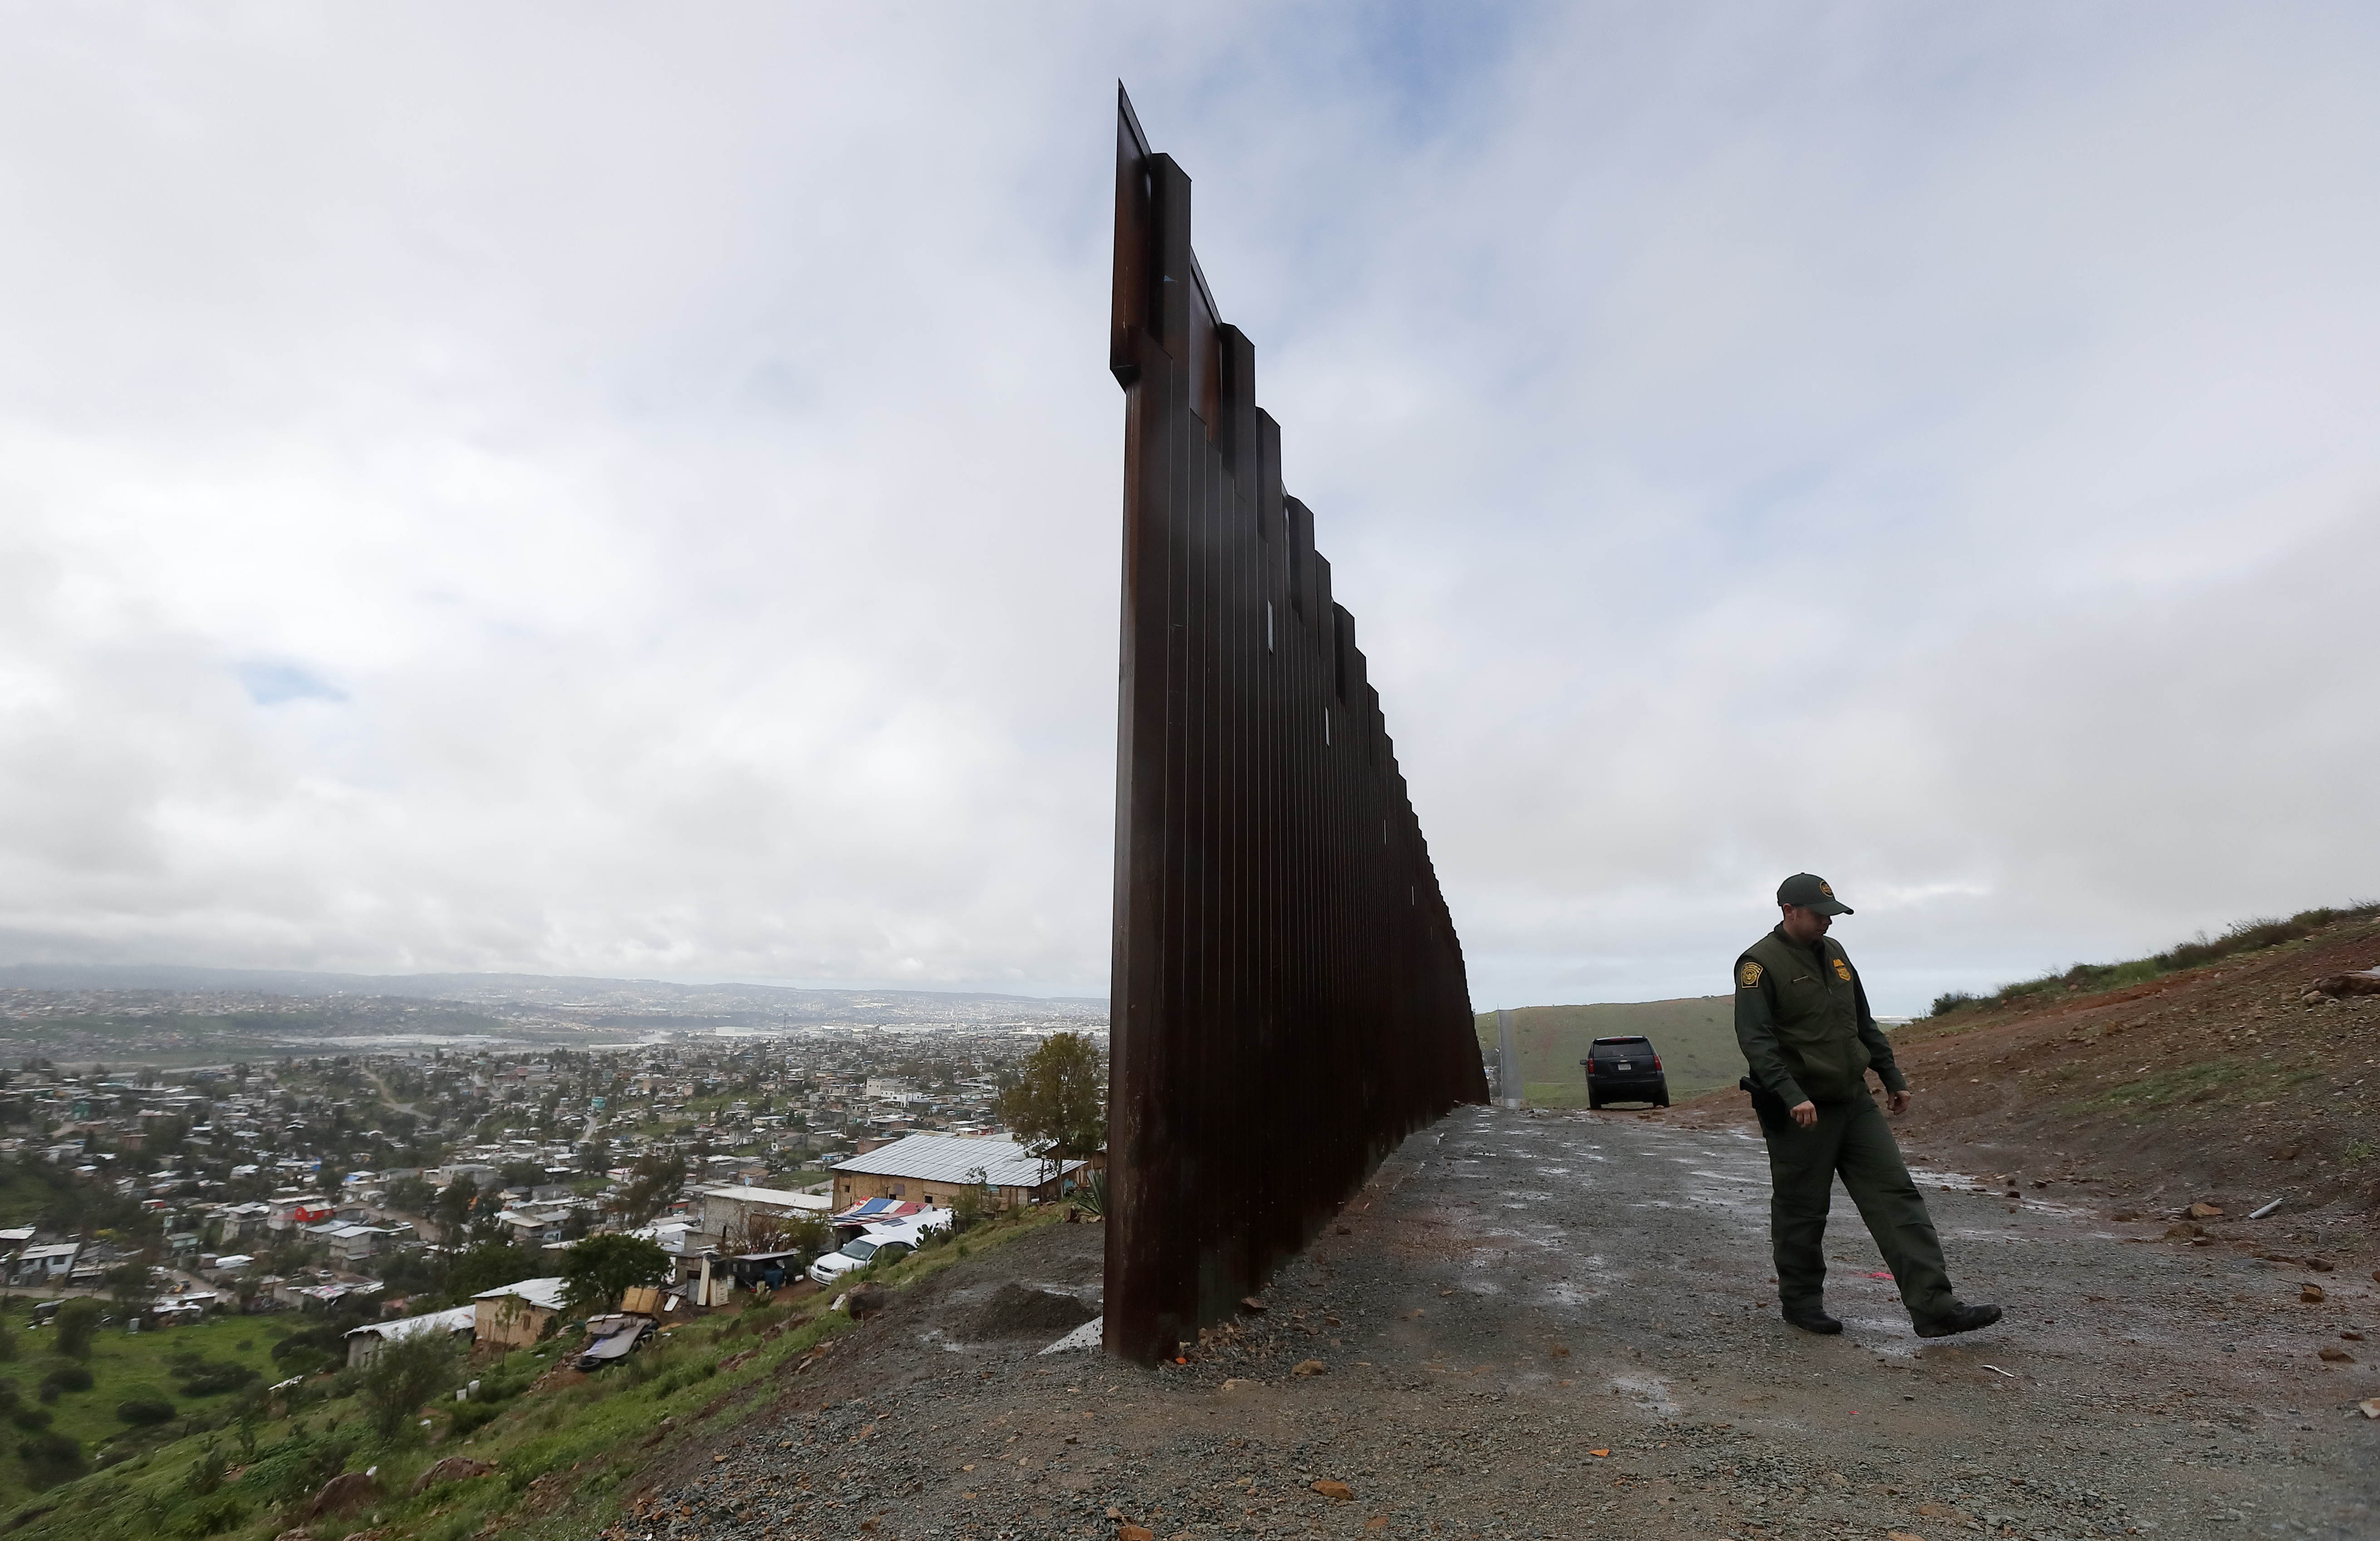 Border Patrol agent Vincent Pirro walks near the end of a border wall ends that separates Tijuana, Mexico, left, from San Diego, right, on Feb. 5, 2019. On Friday, President Donald Trump announced he will declare a national emergency on immigration, allowing him to use military construction funds to build more miles of the border wall despite resistance to the proposal from lawmakers. (Gregory Bull/AP)